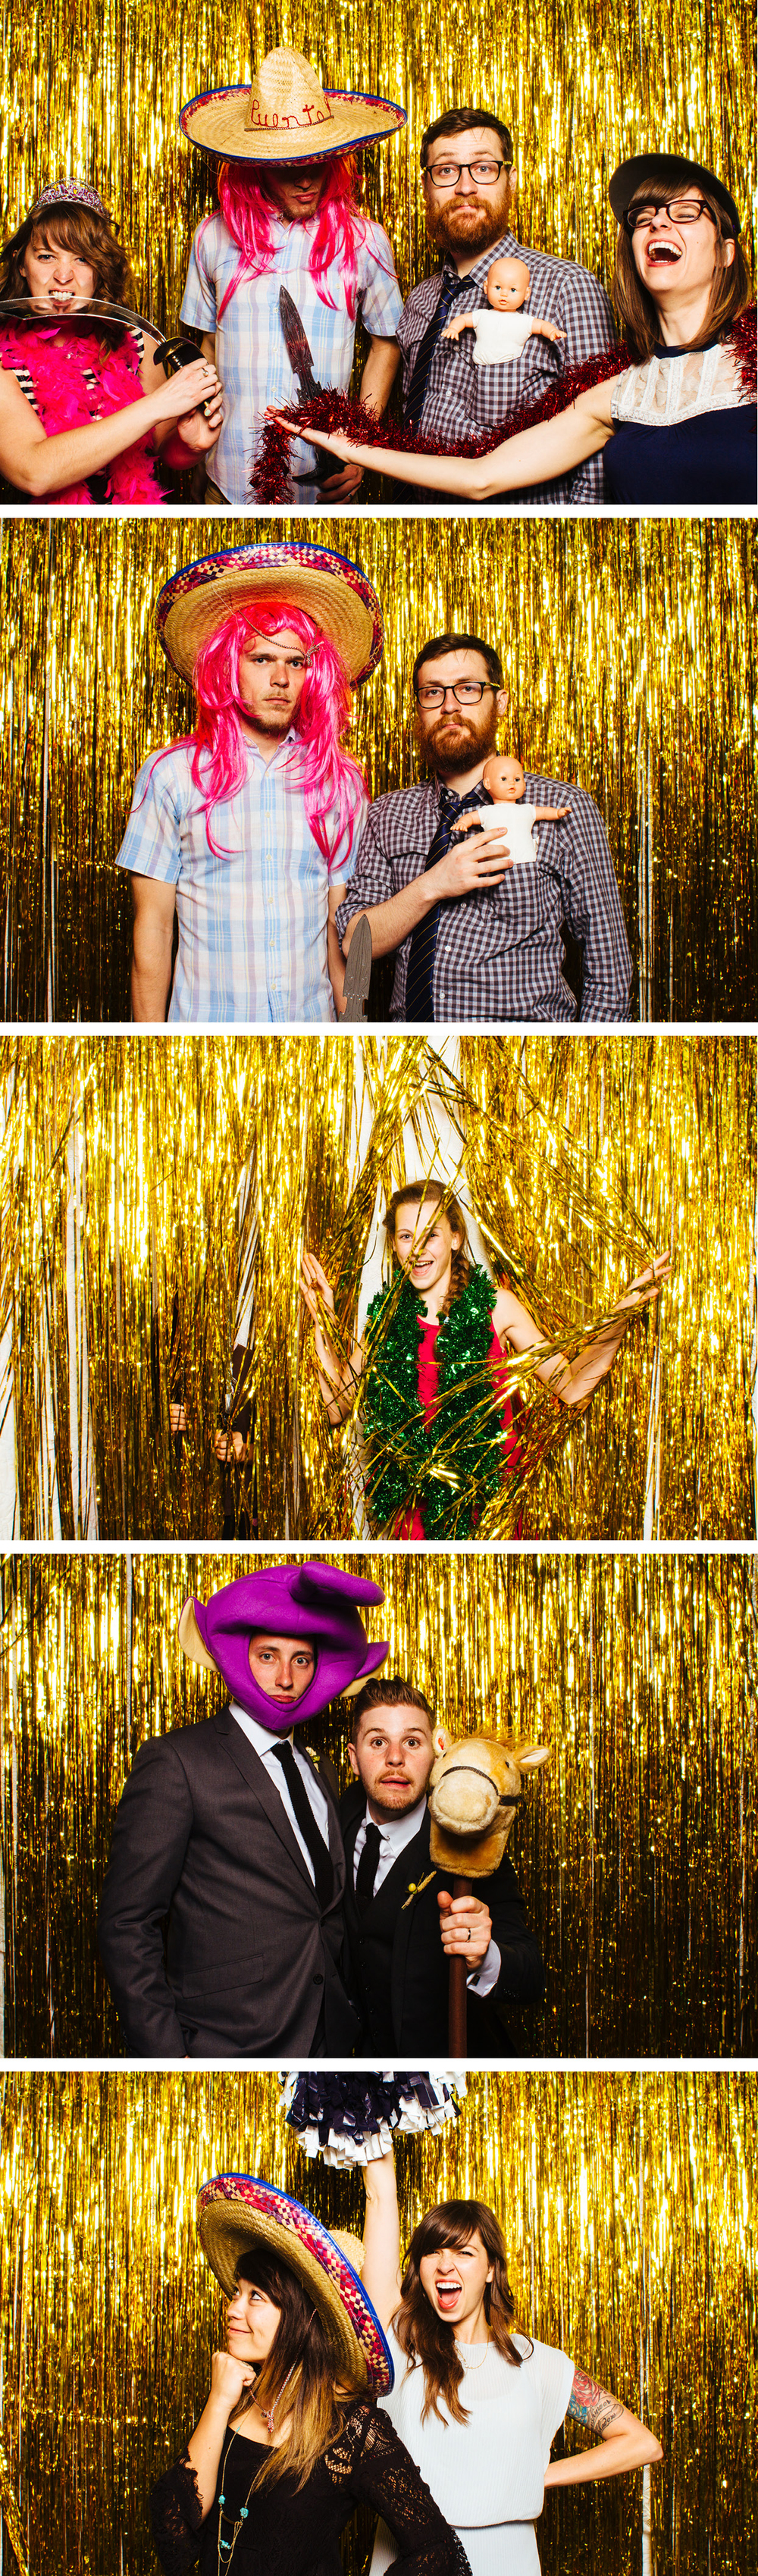 CK-Photo-Nashville-Wedding-Photographer-Photobooth-DL9.jpg